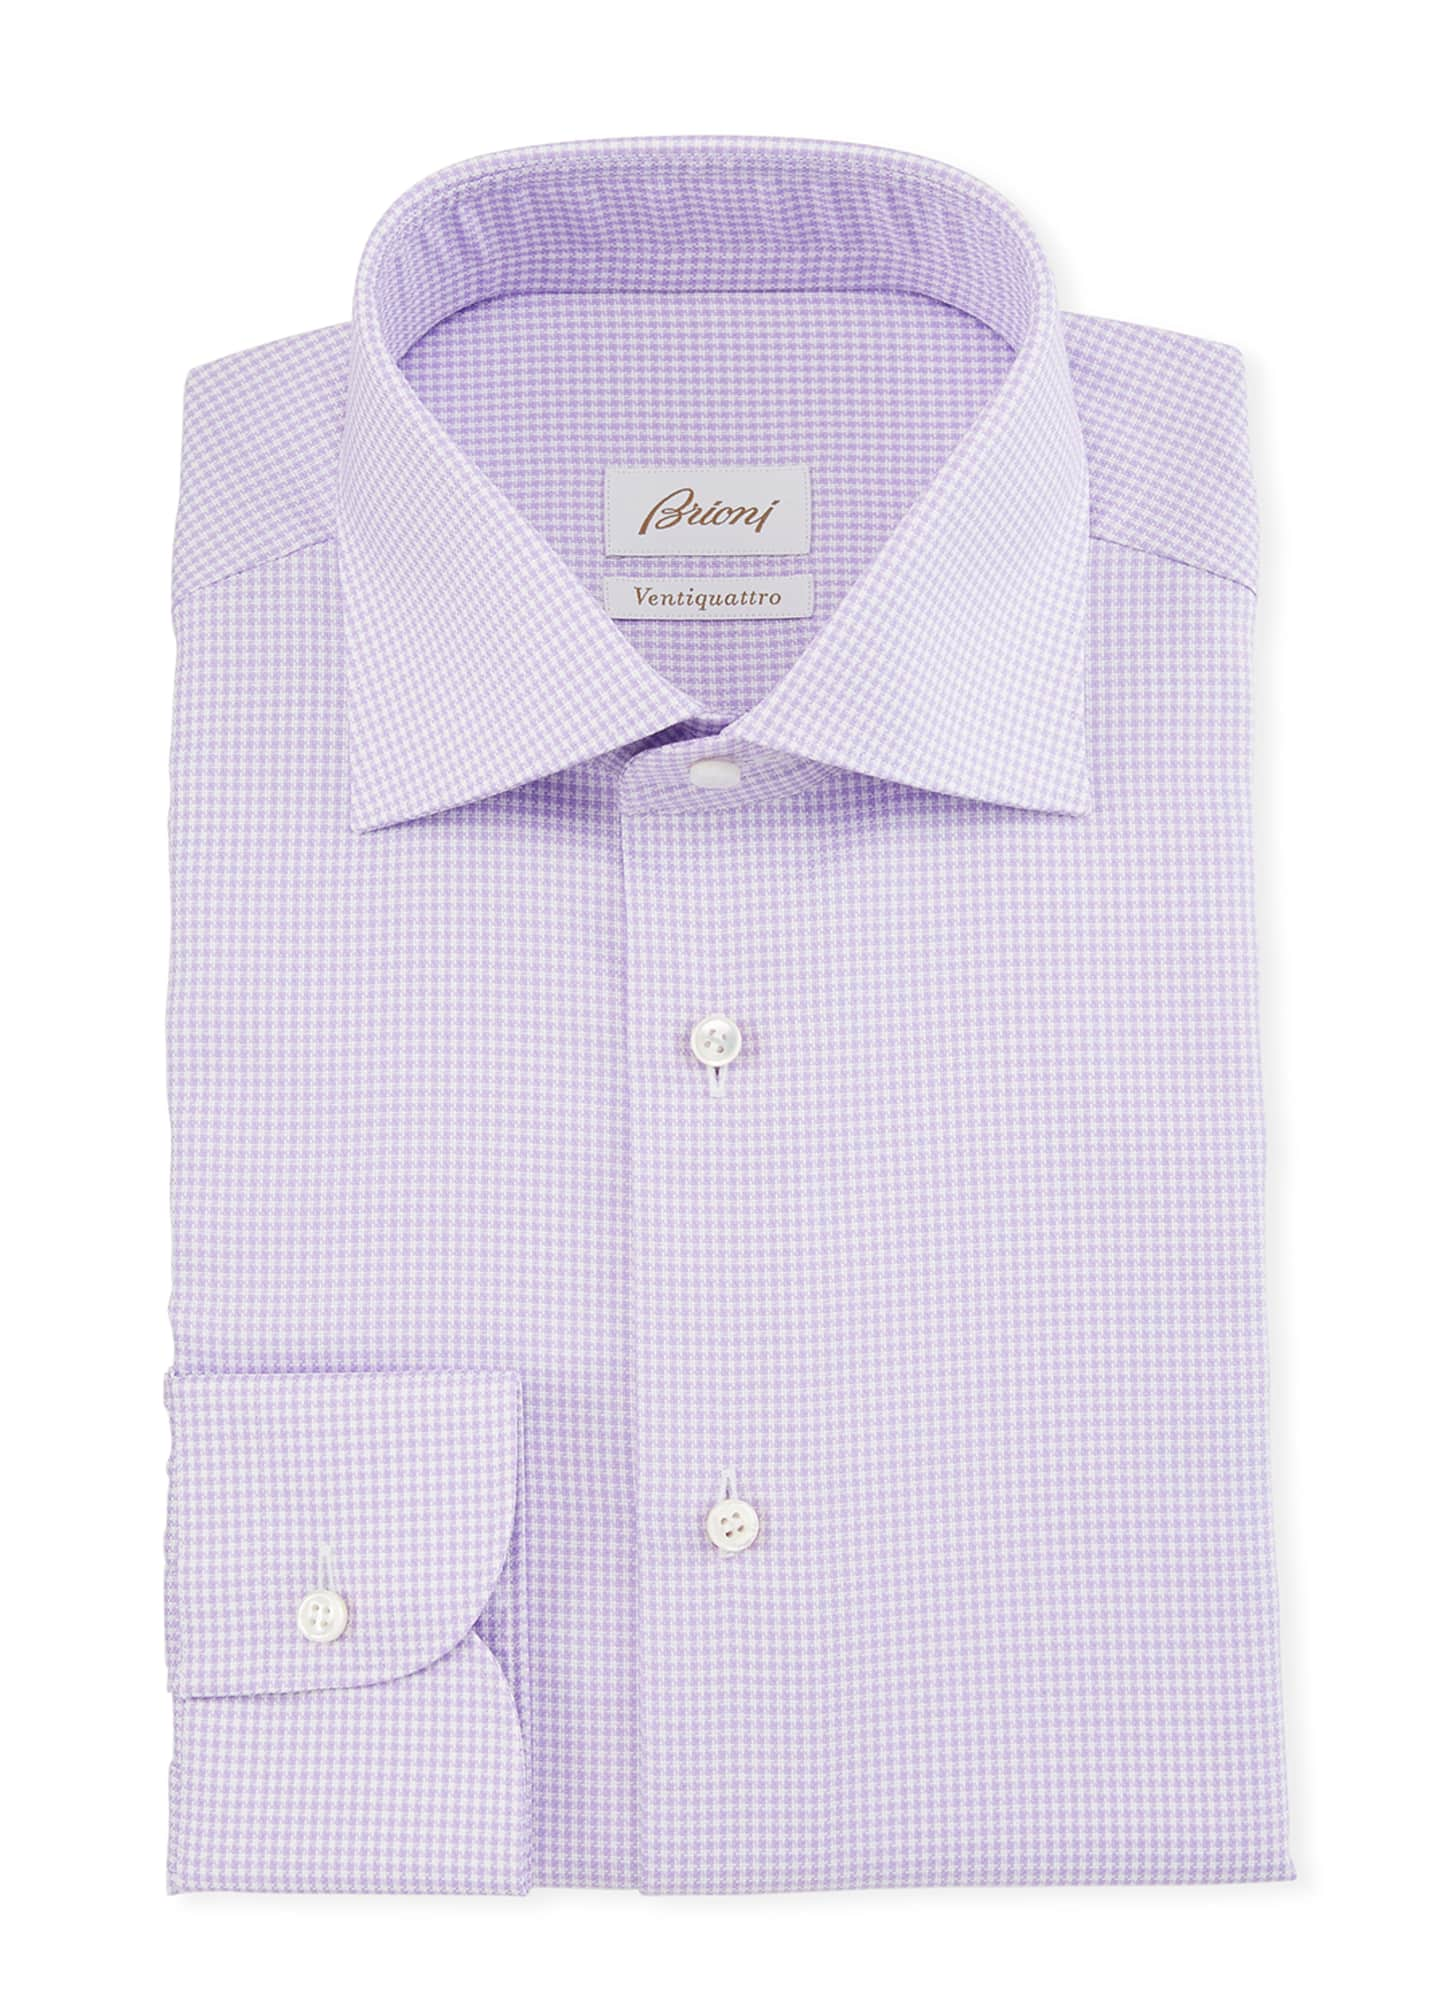 Image 1 of 2: Men's Ventiquattro Houndstooth Check Dress Shirt